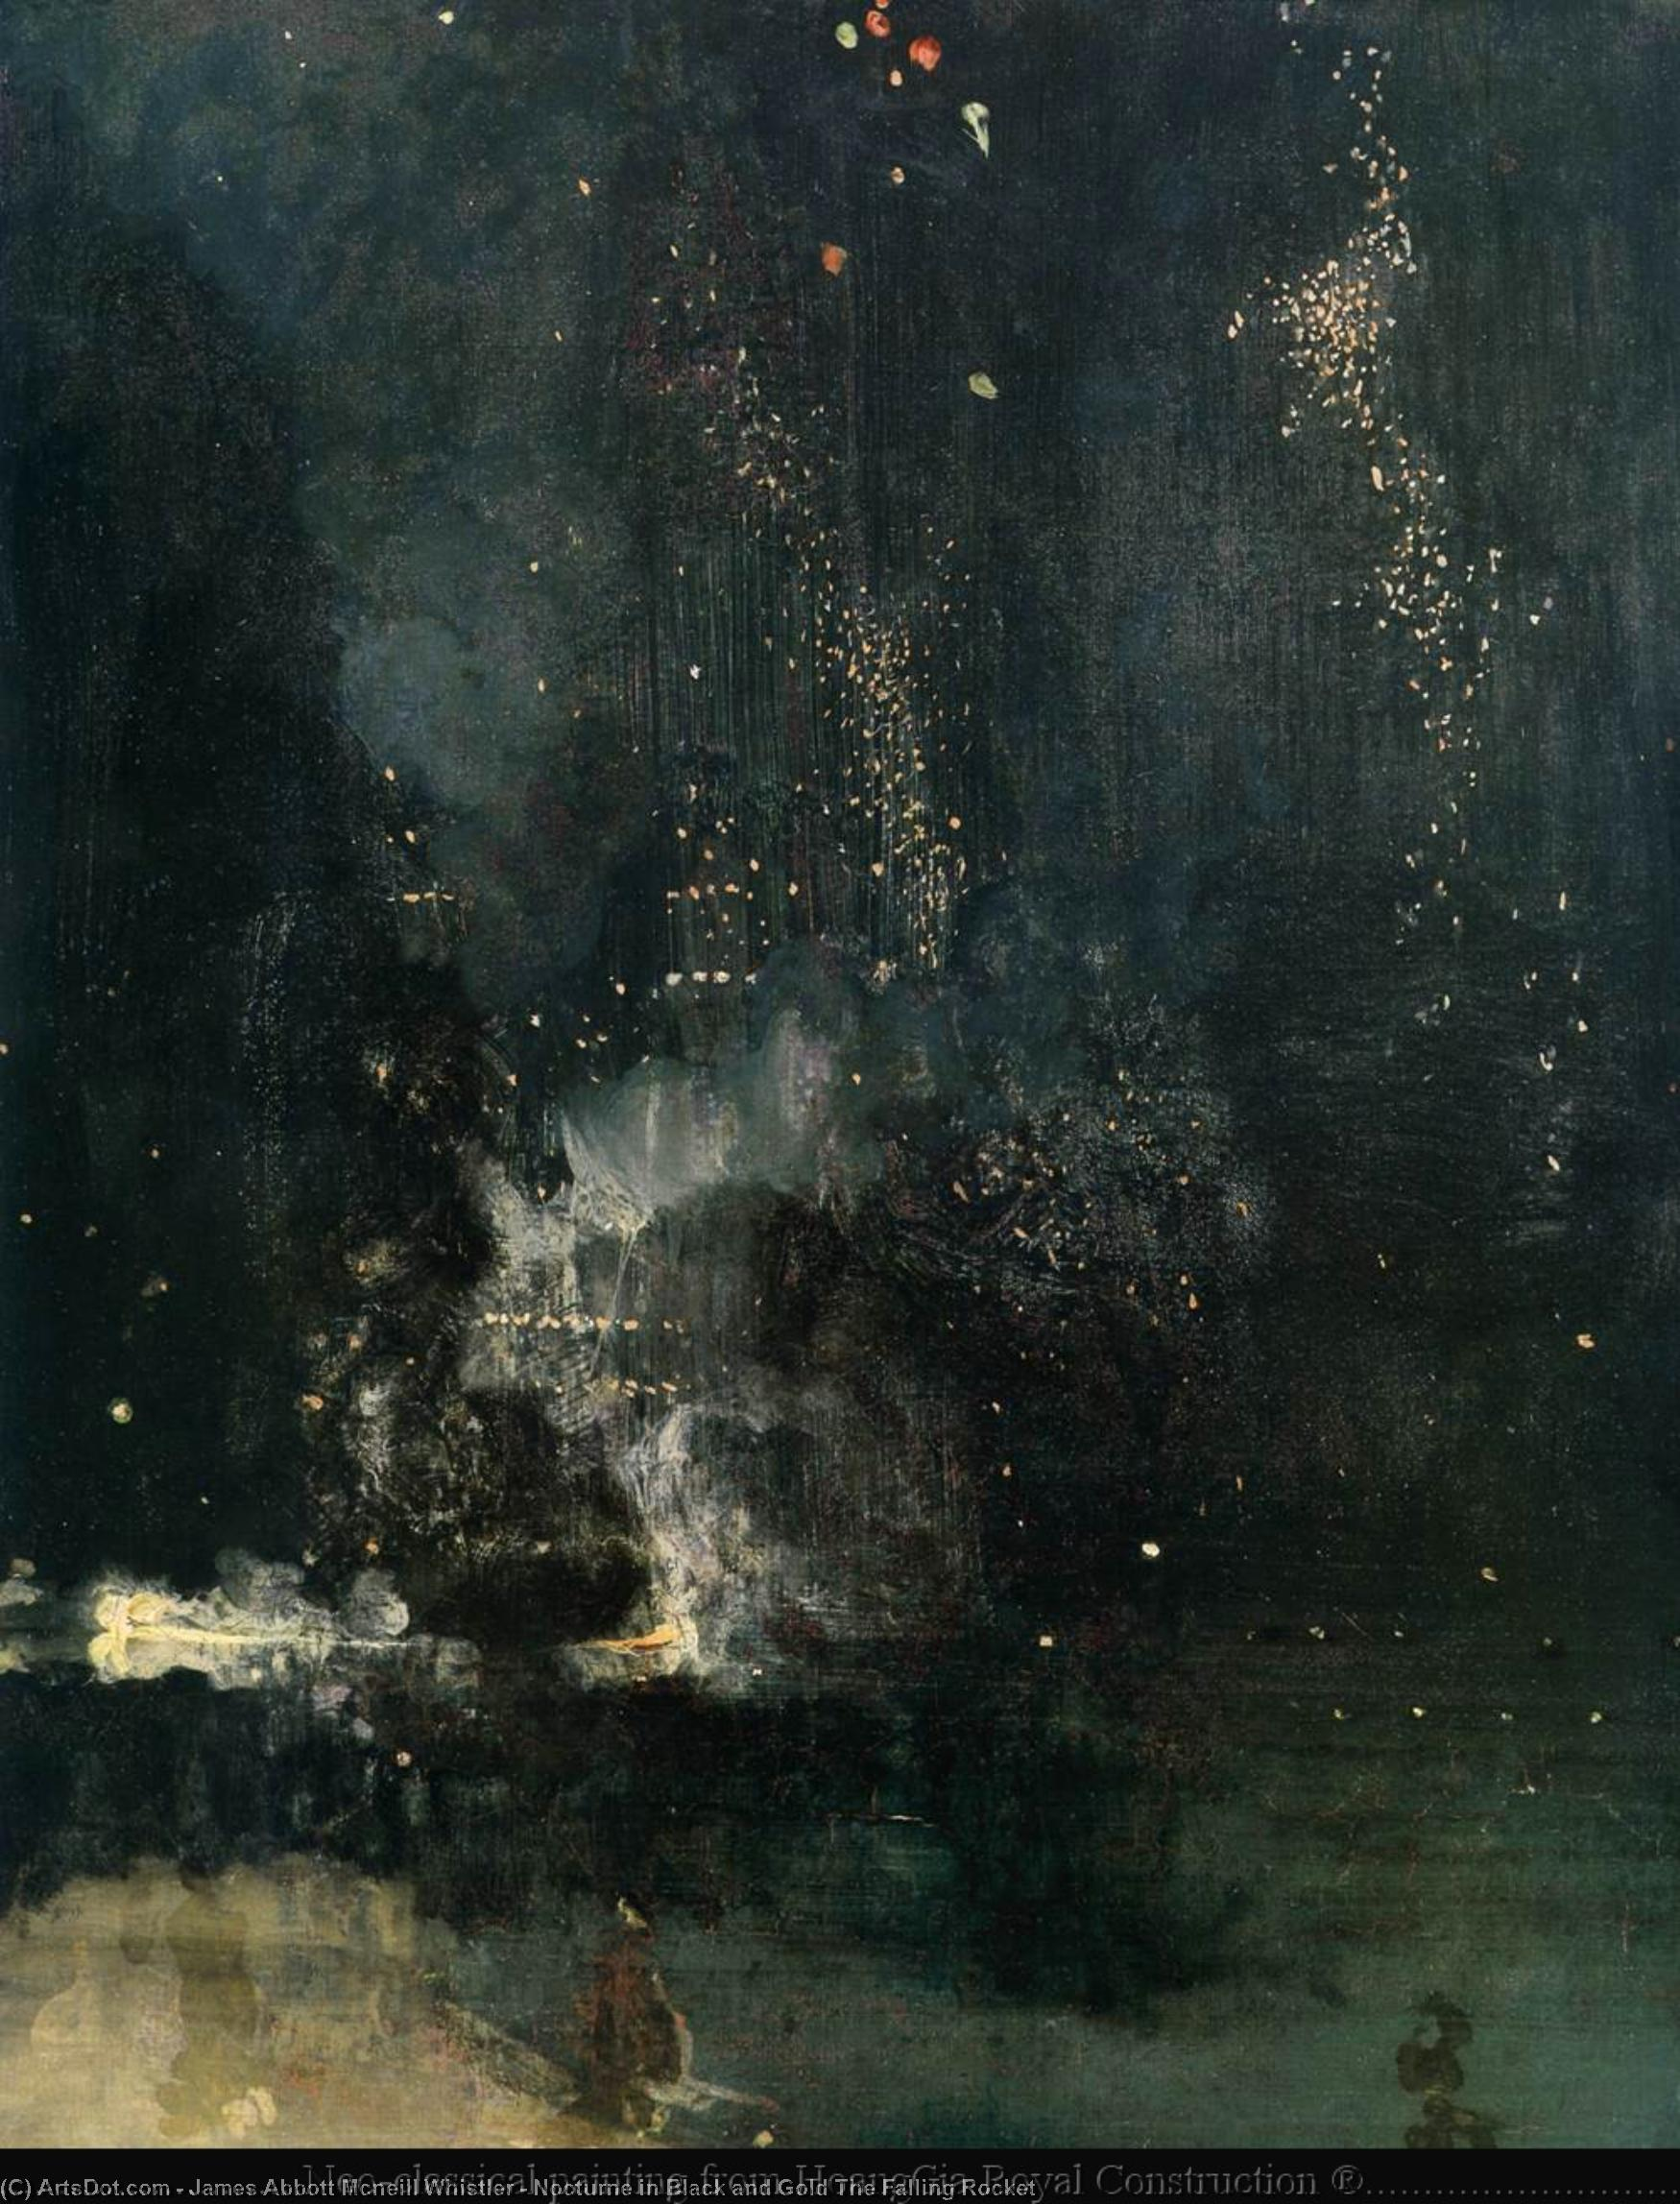 夜曲 在  黑色  和  金  的  在下降  火箭 , 1875 通过 James Abbott Mcneill Whistler (1834-1903, United States) | 手工油畫 James Abbott Mcneill Whistler | ArtsDot.com